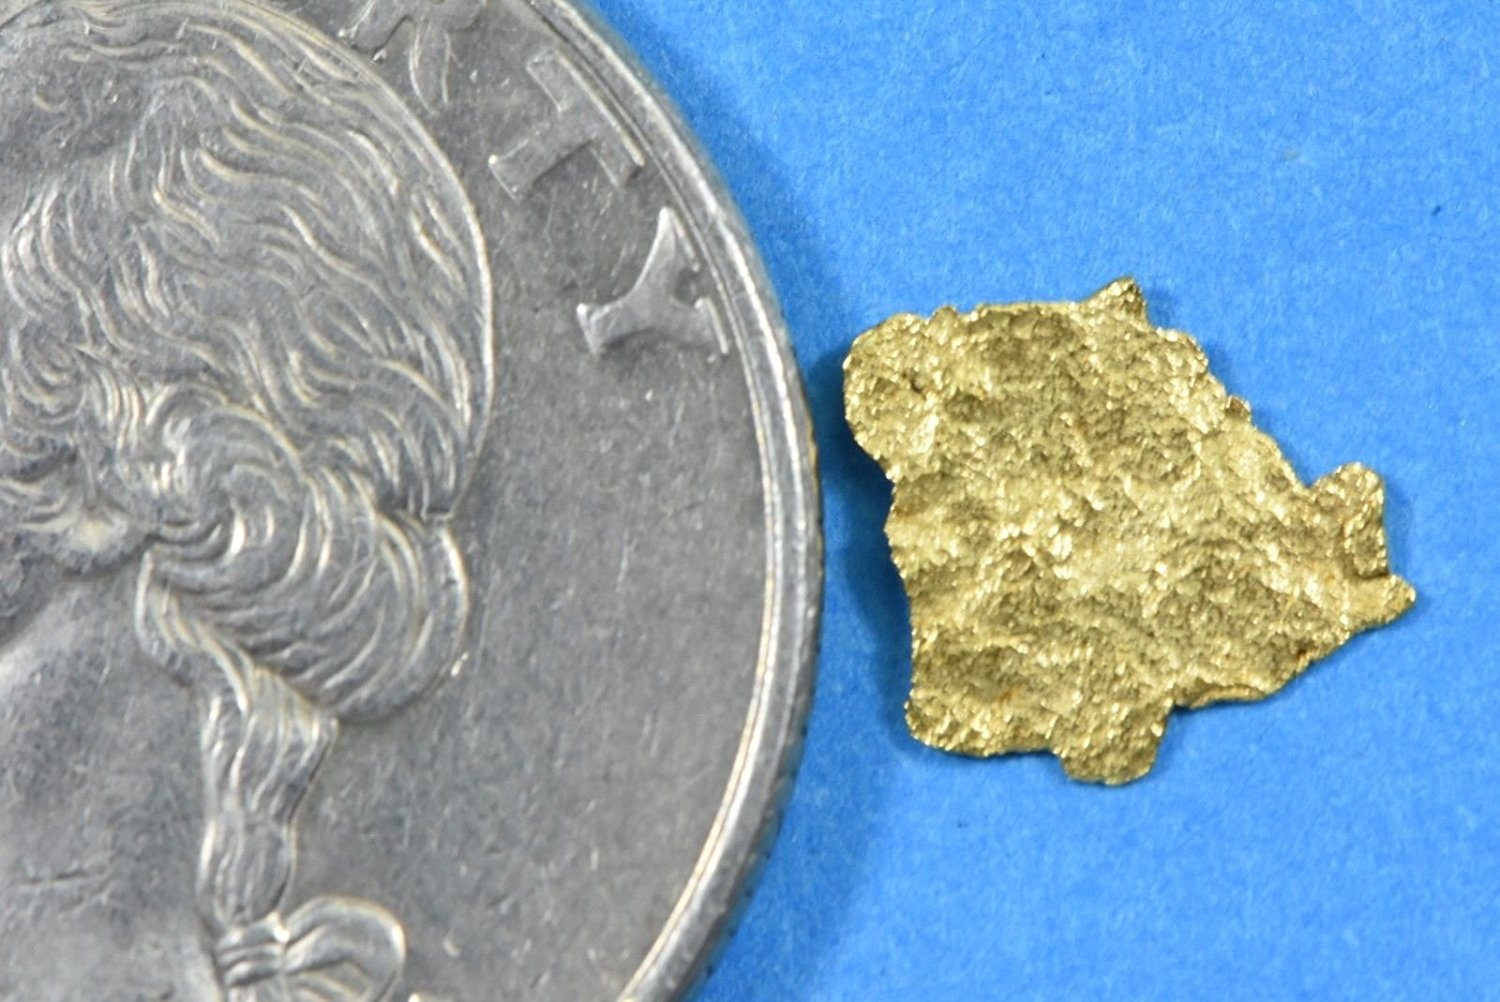 Alaskan-Yukon Bc Gold Rush Natural Nugget 0.23 Grams Genuine Alaska .10-.34